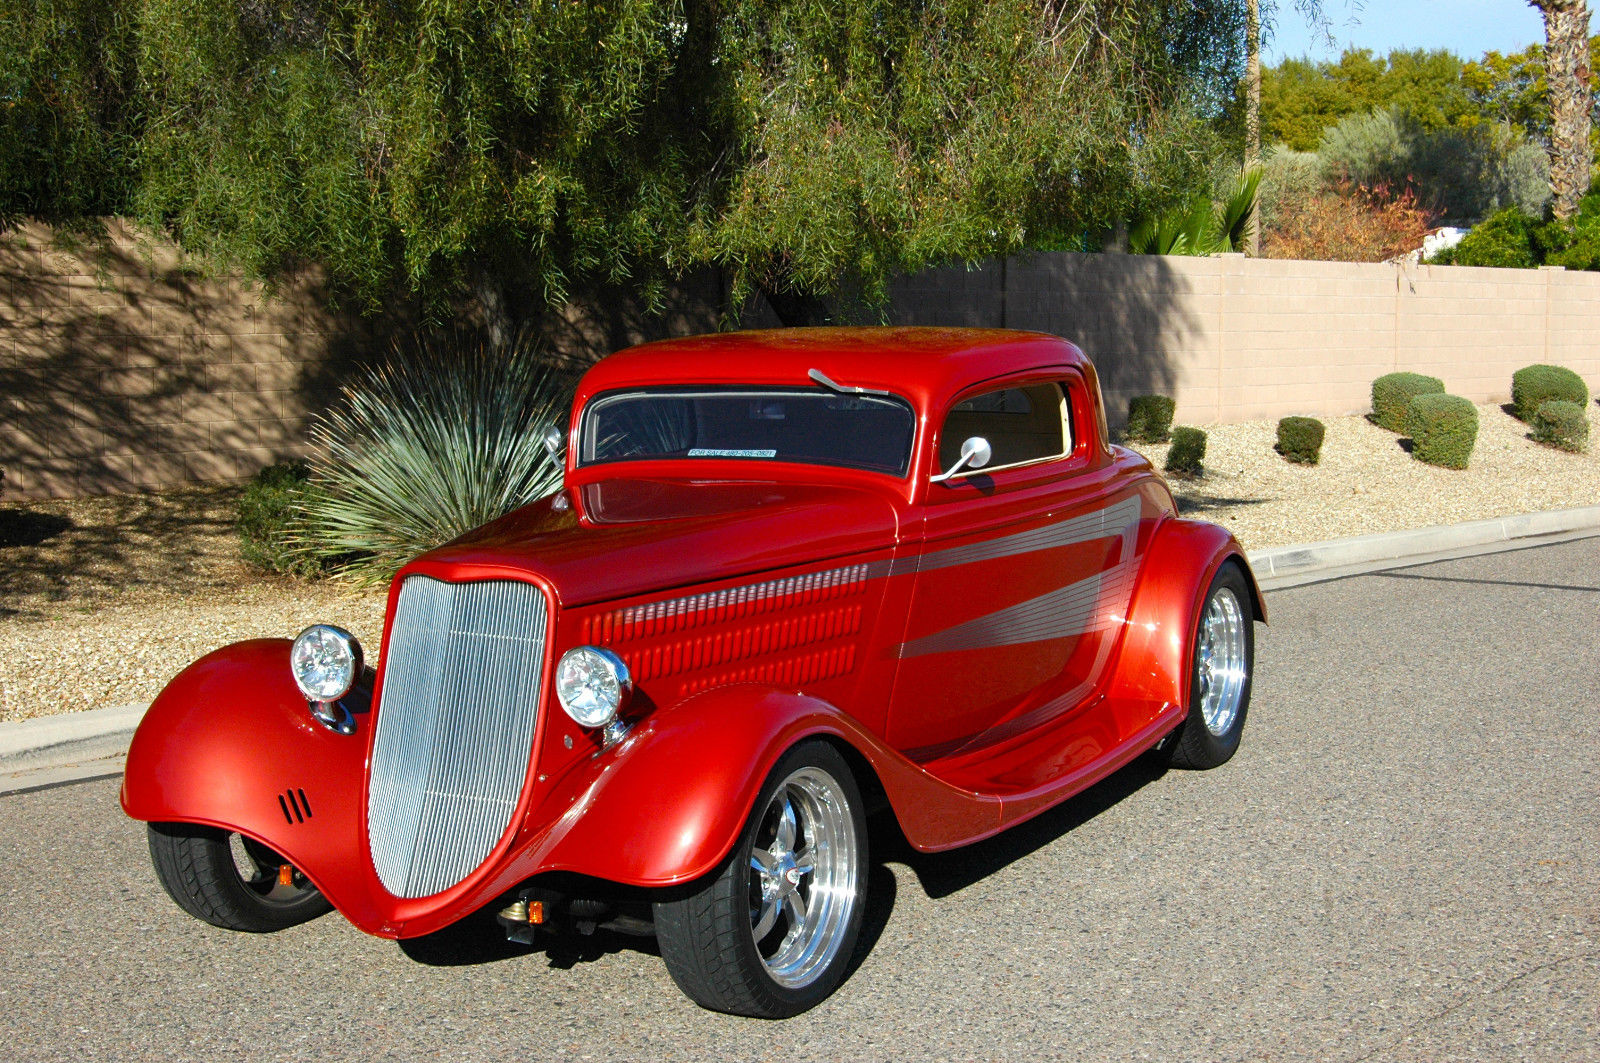 1933 all ford 3 window coupe for sale in phoenix arizona for 1933 ford 3 window